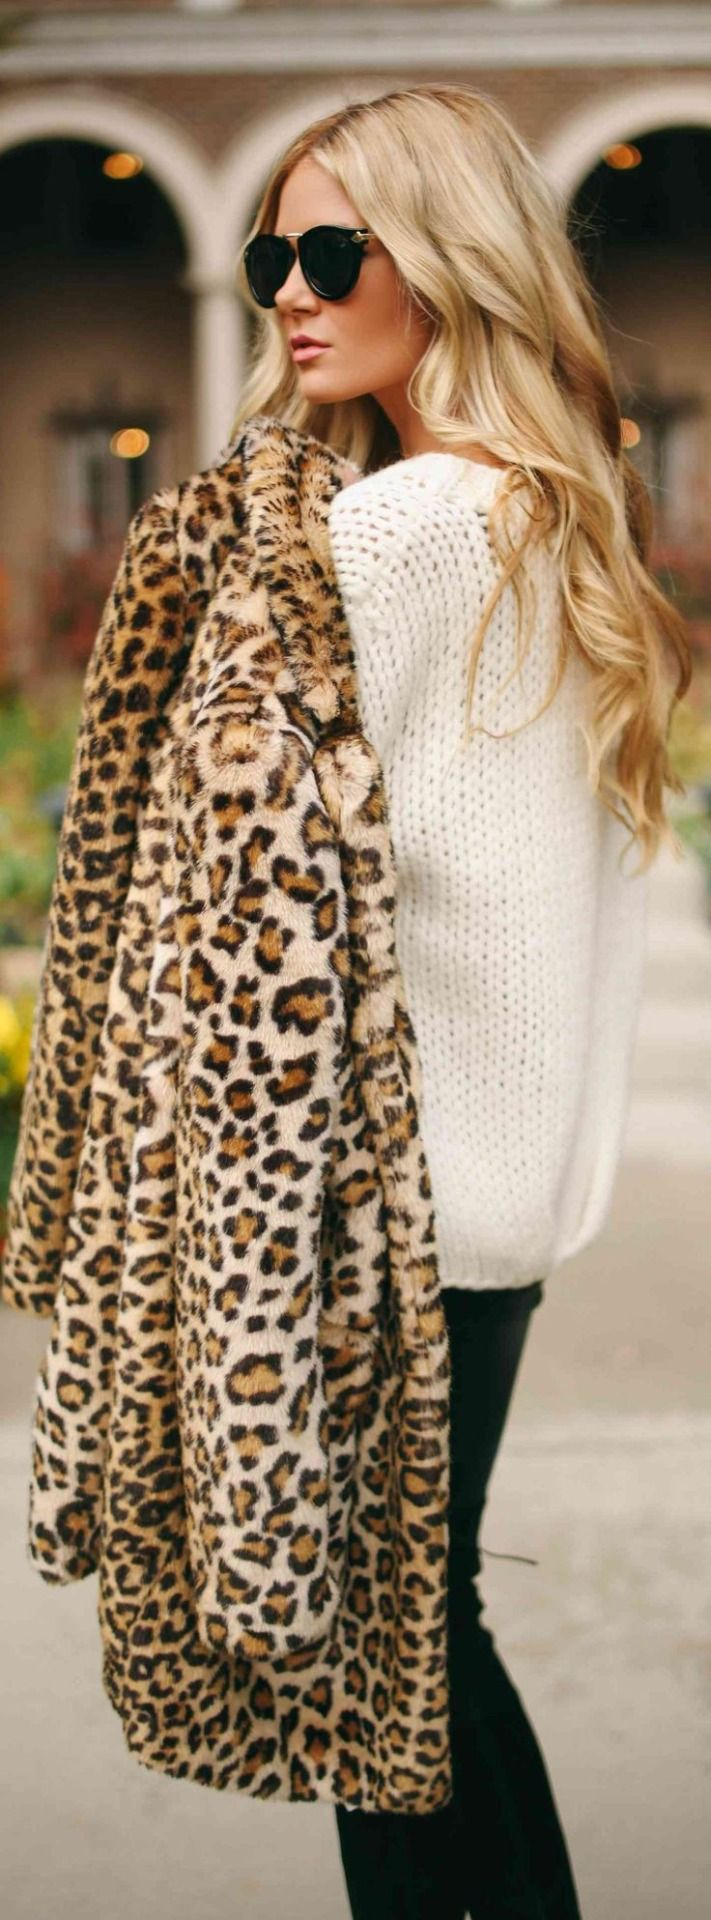 Leopard coat + cream sweater street style. Let us captivate your senses at Lou Lou & Percy with our luxurious on trend affordable fashion jewellery. www.loulouandpercy.com